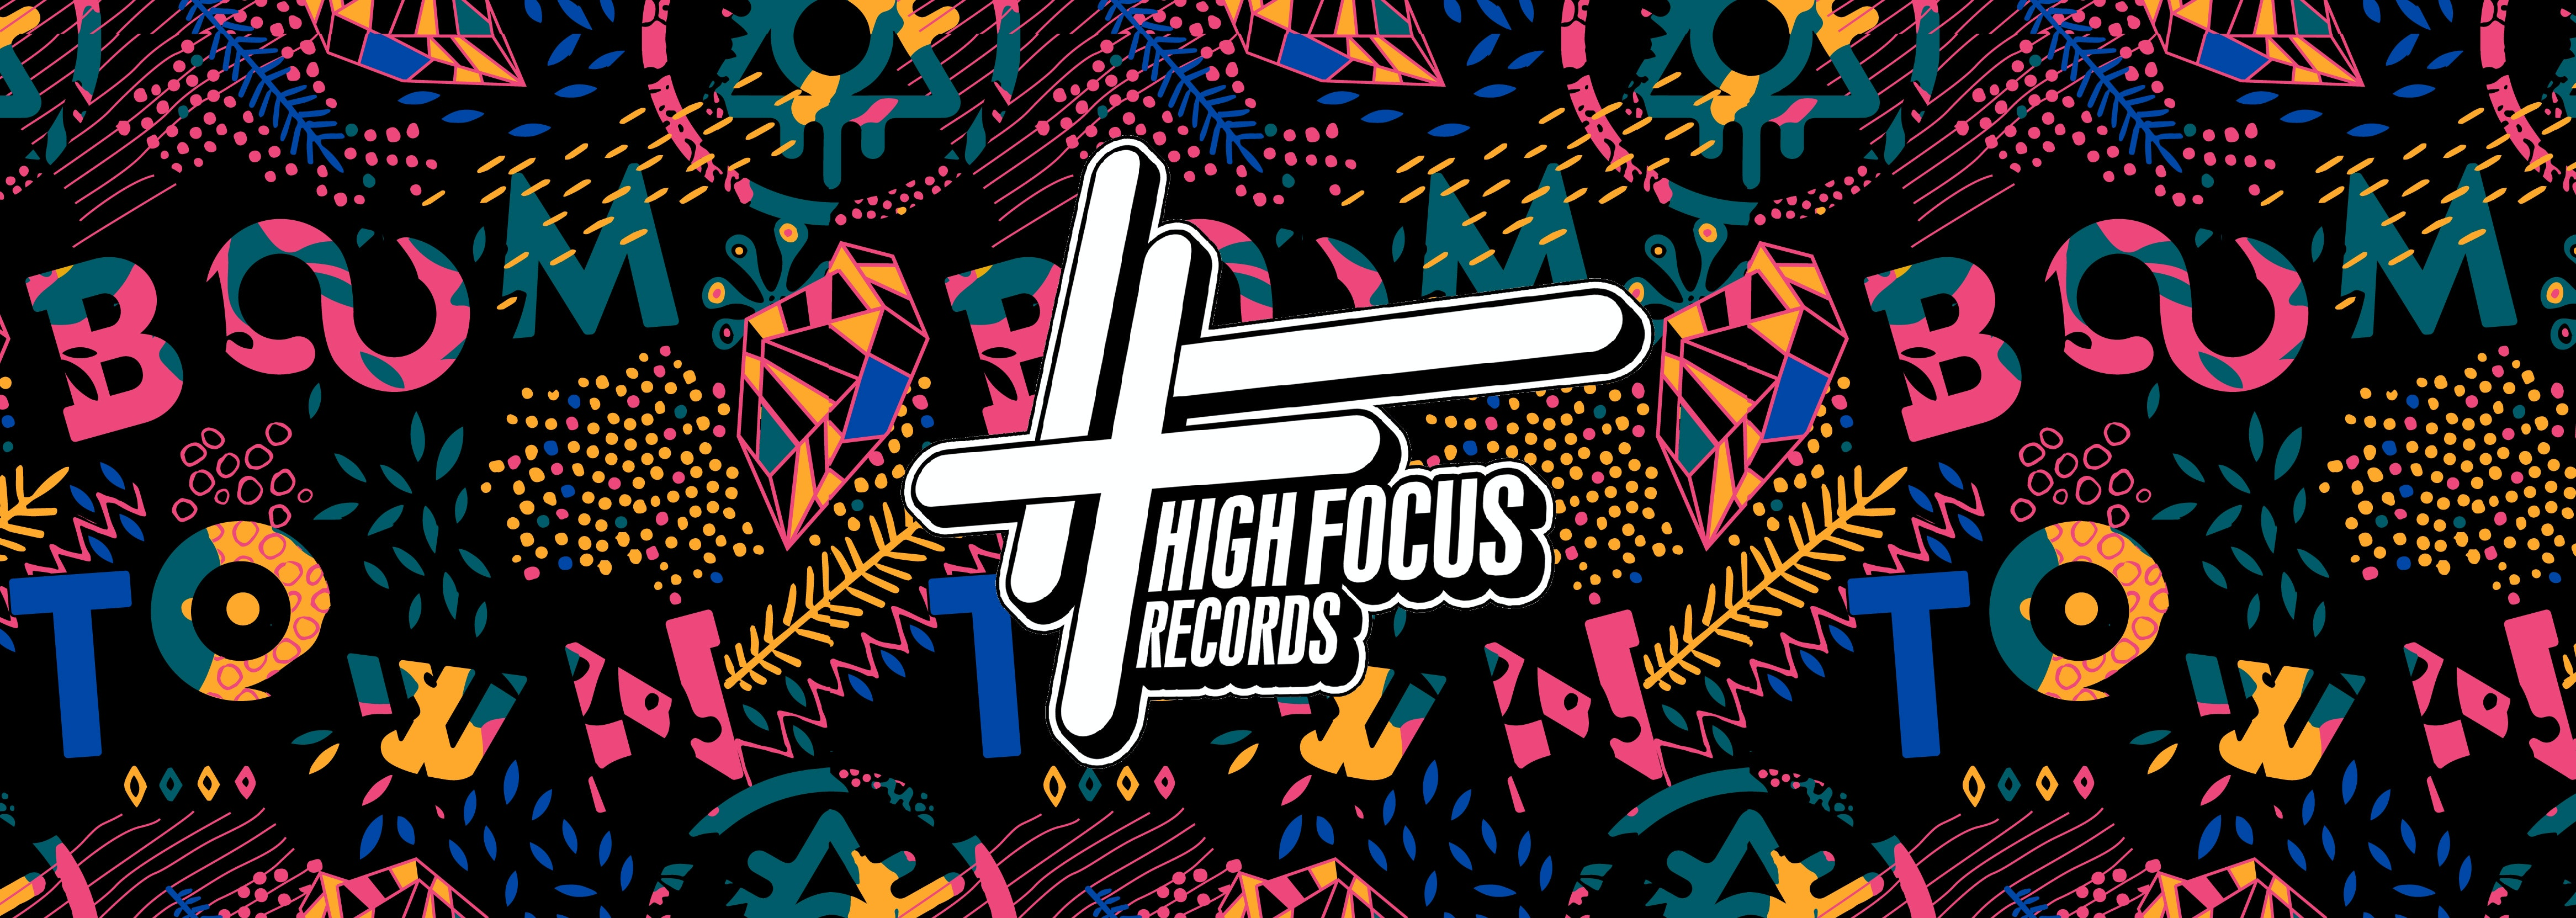 High Focus Takeover